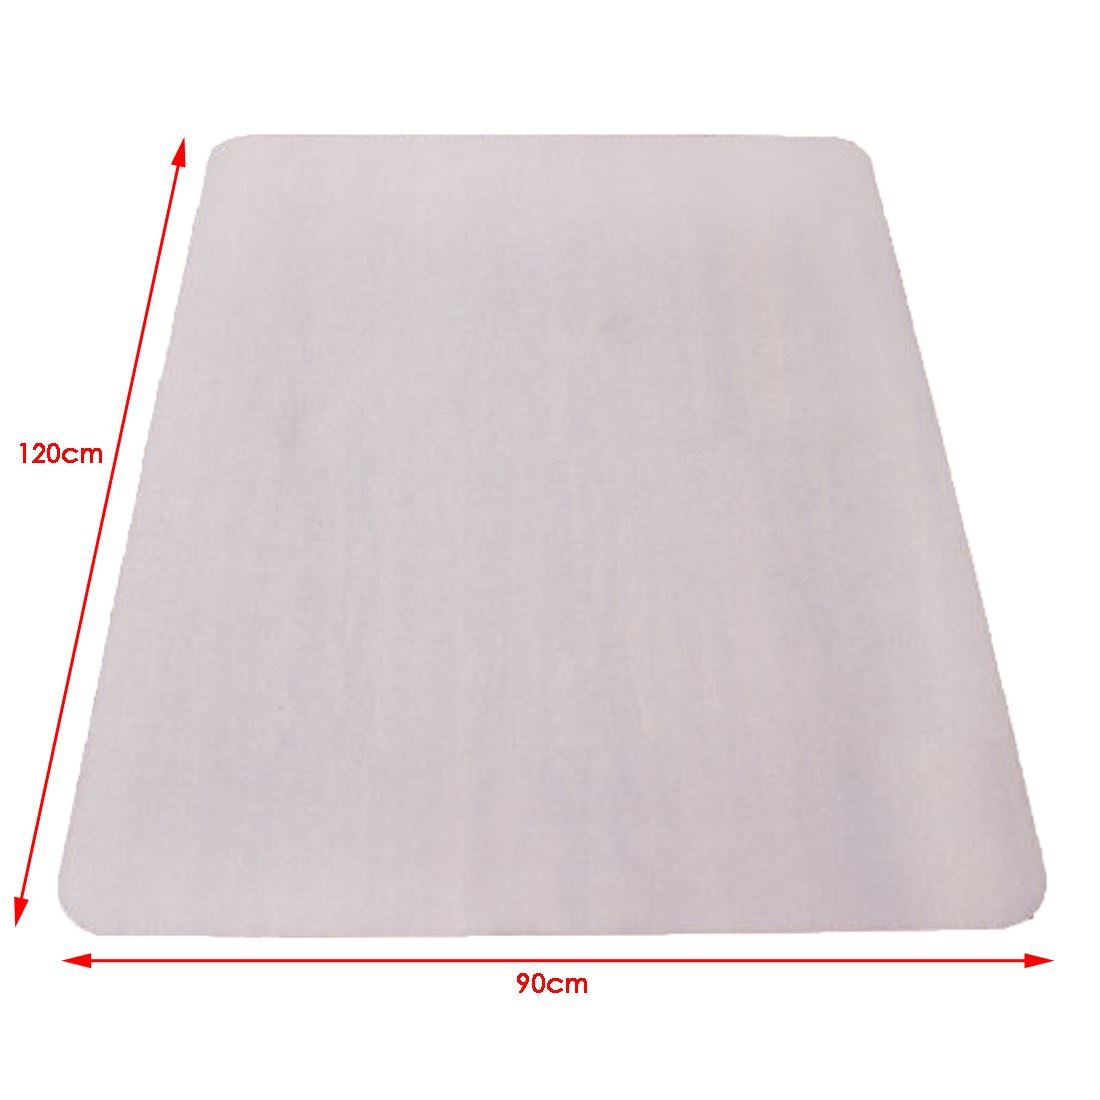 new frosted office chair mat home floor protector non slip